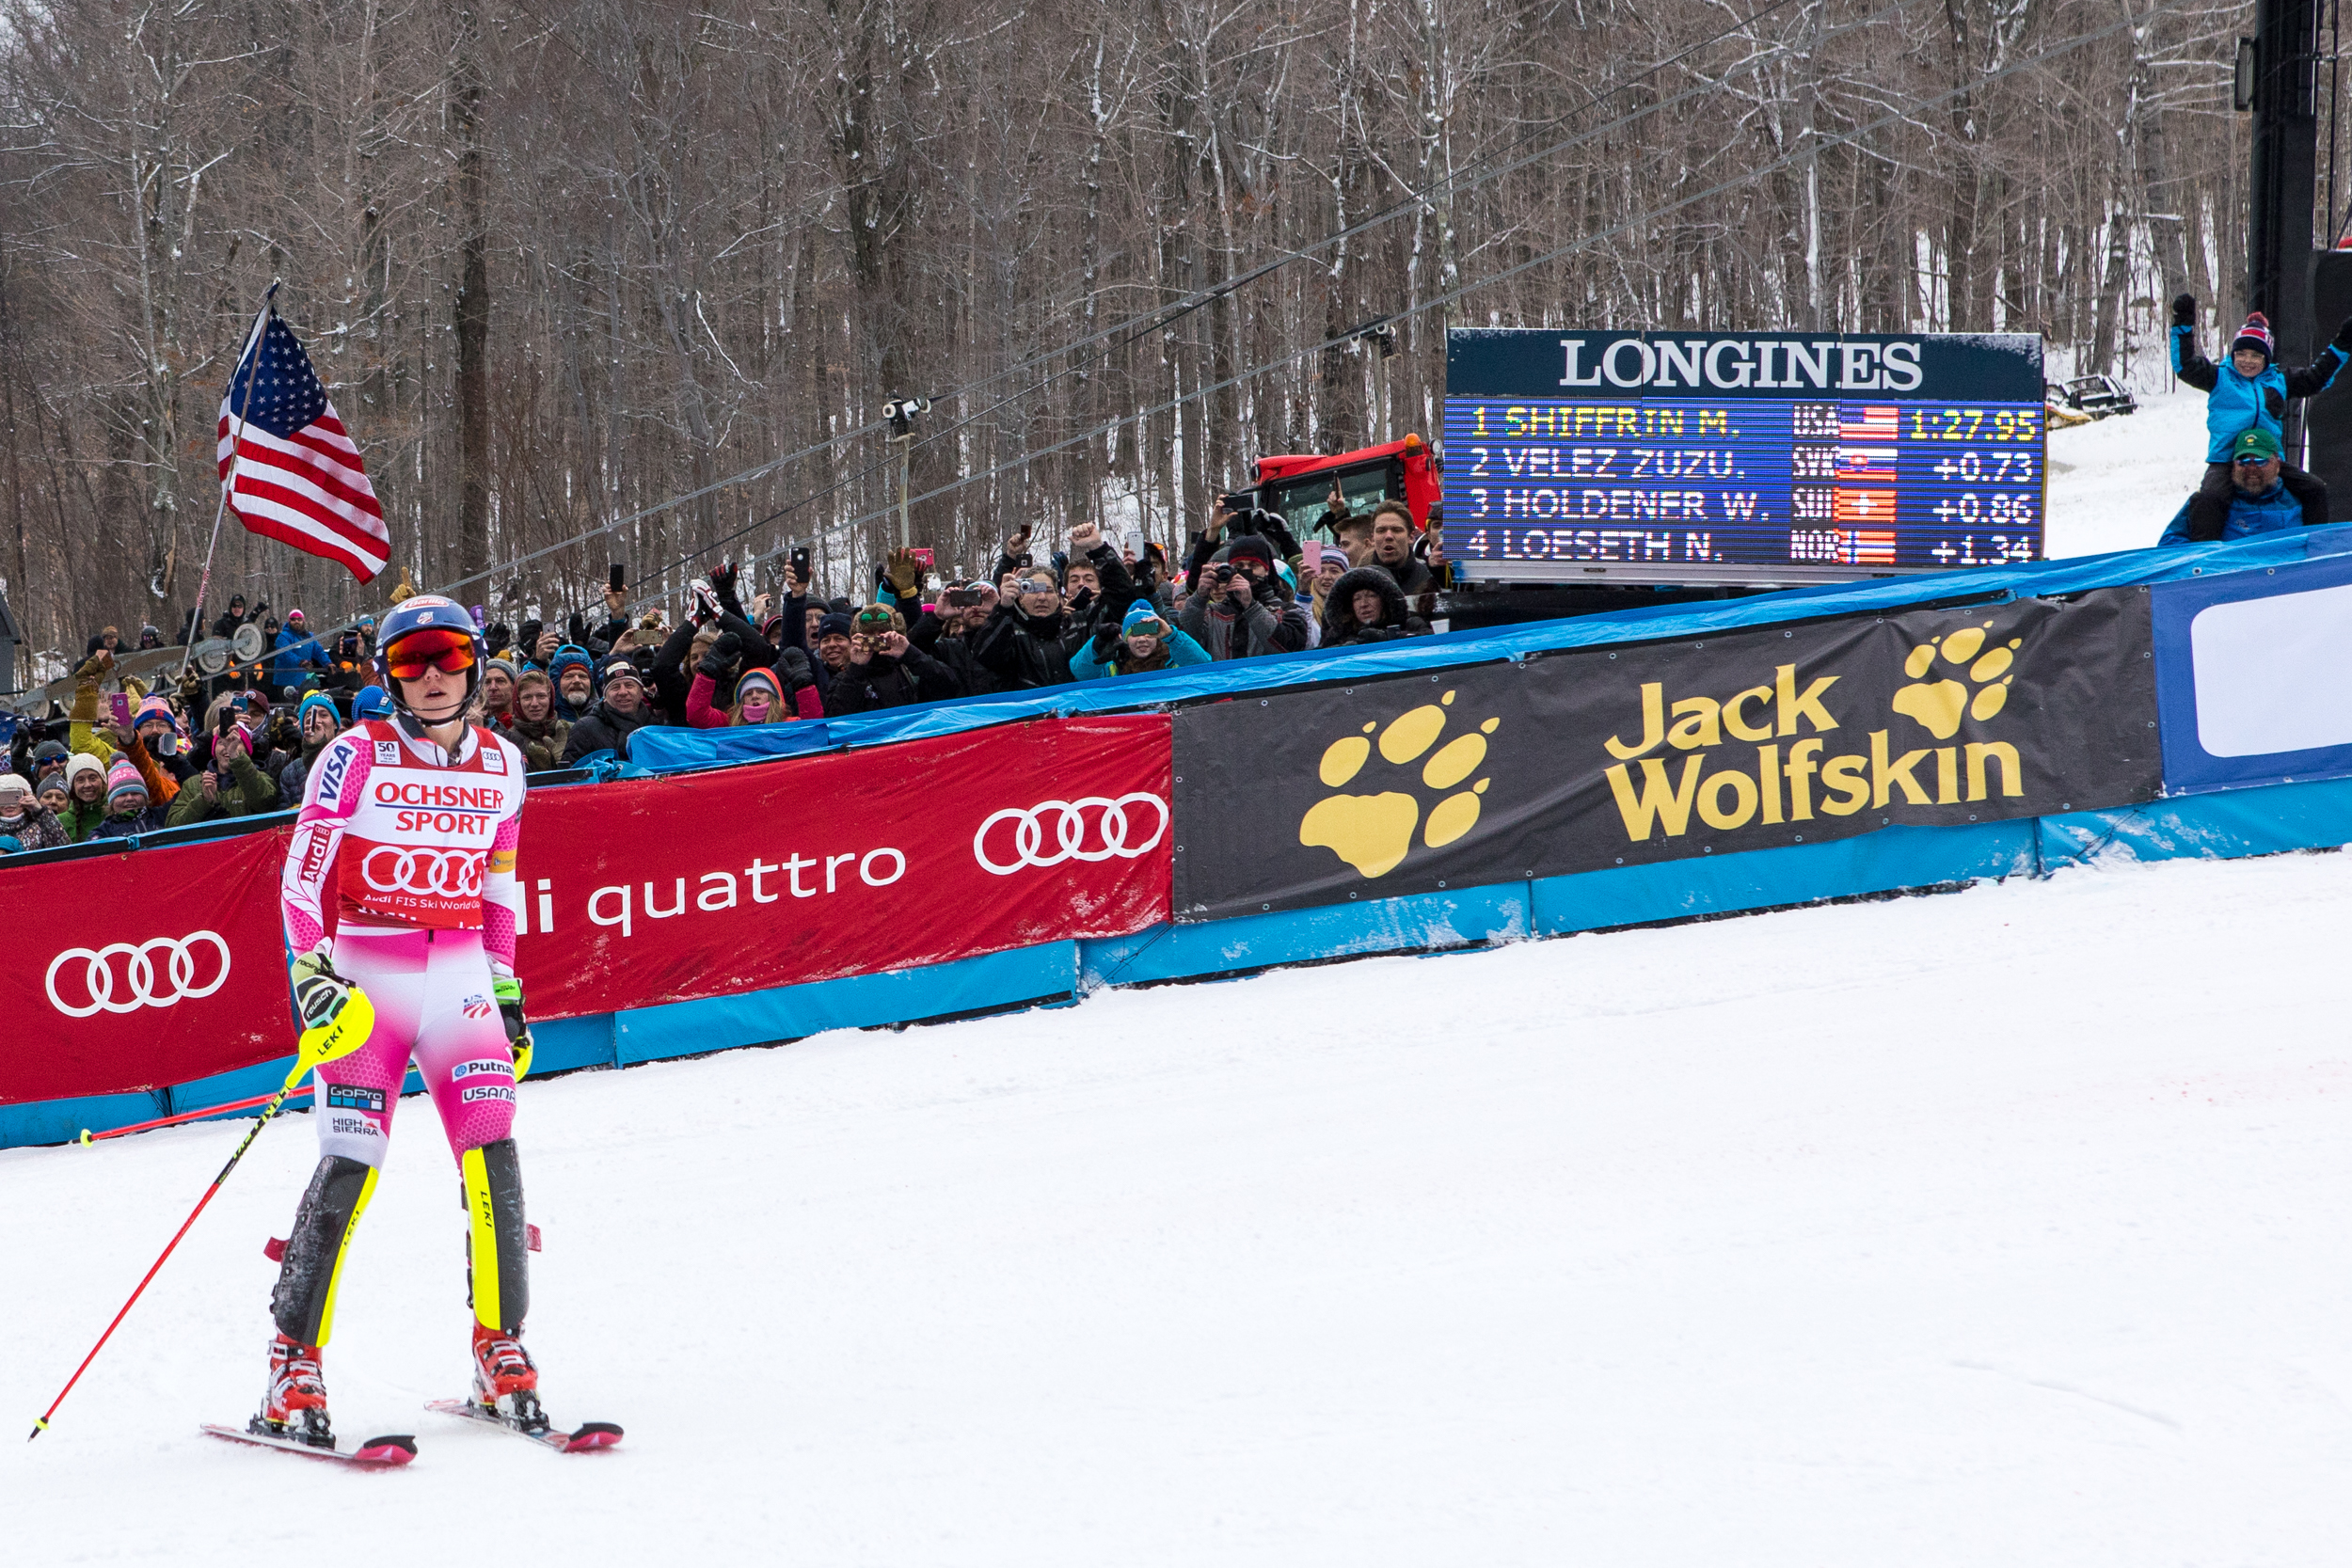 Killington-World-Cup-Mikaela-Shiffrin-GS-Finish-1.jpg